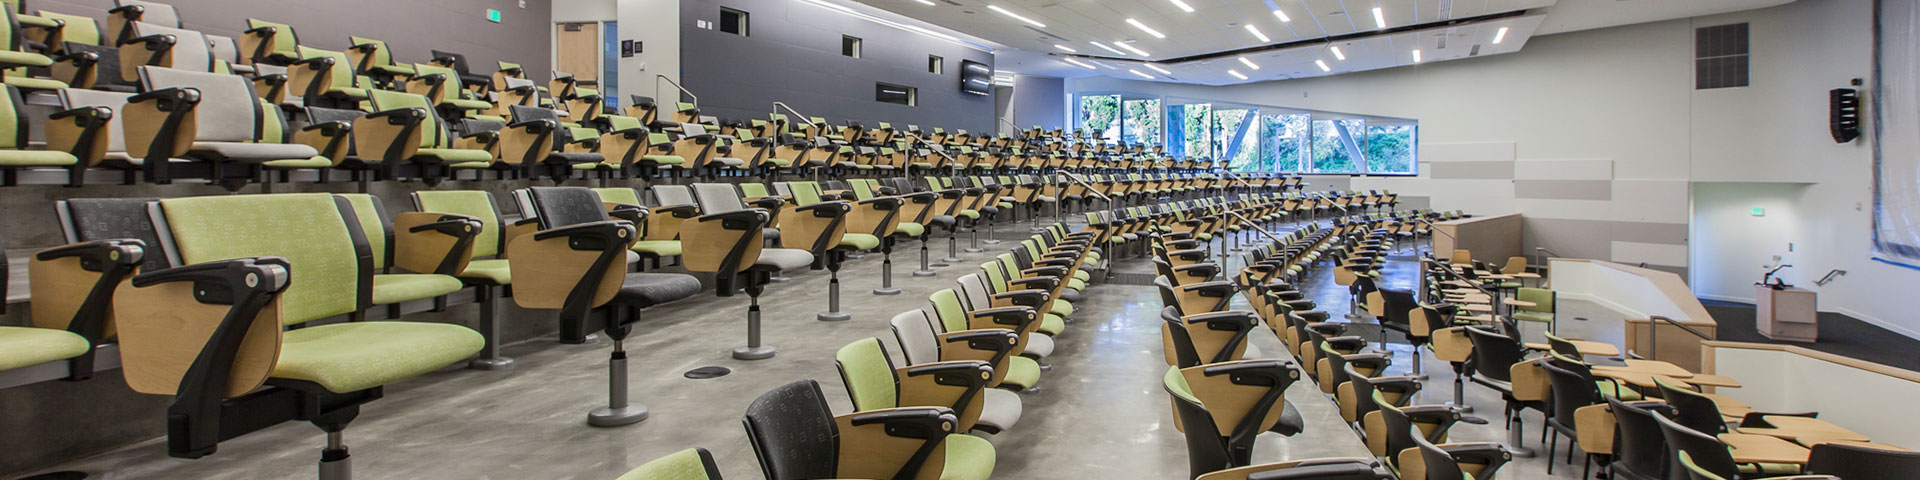 Image of a lecture hall.